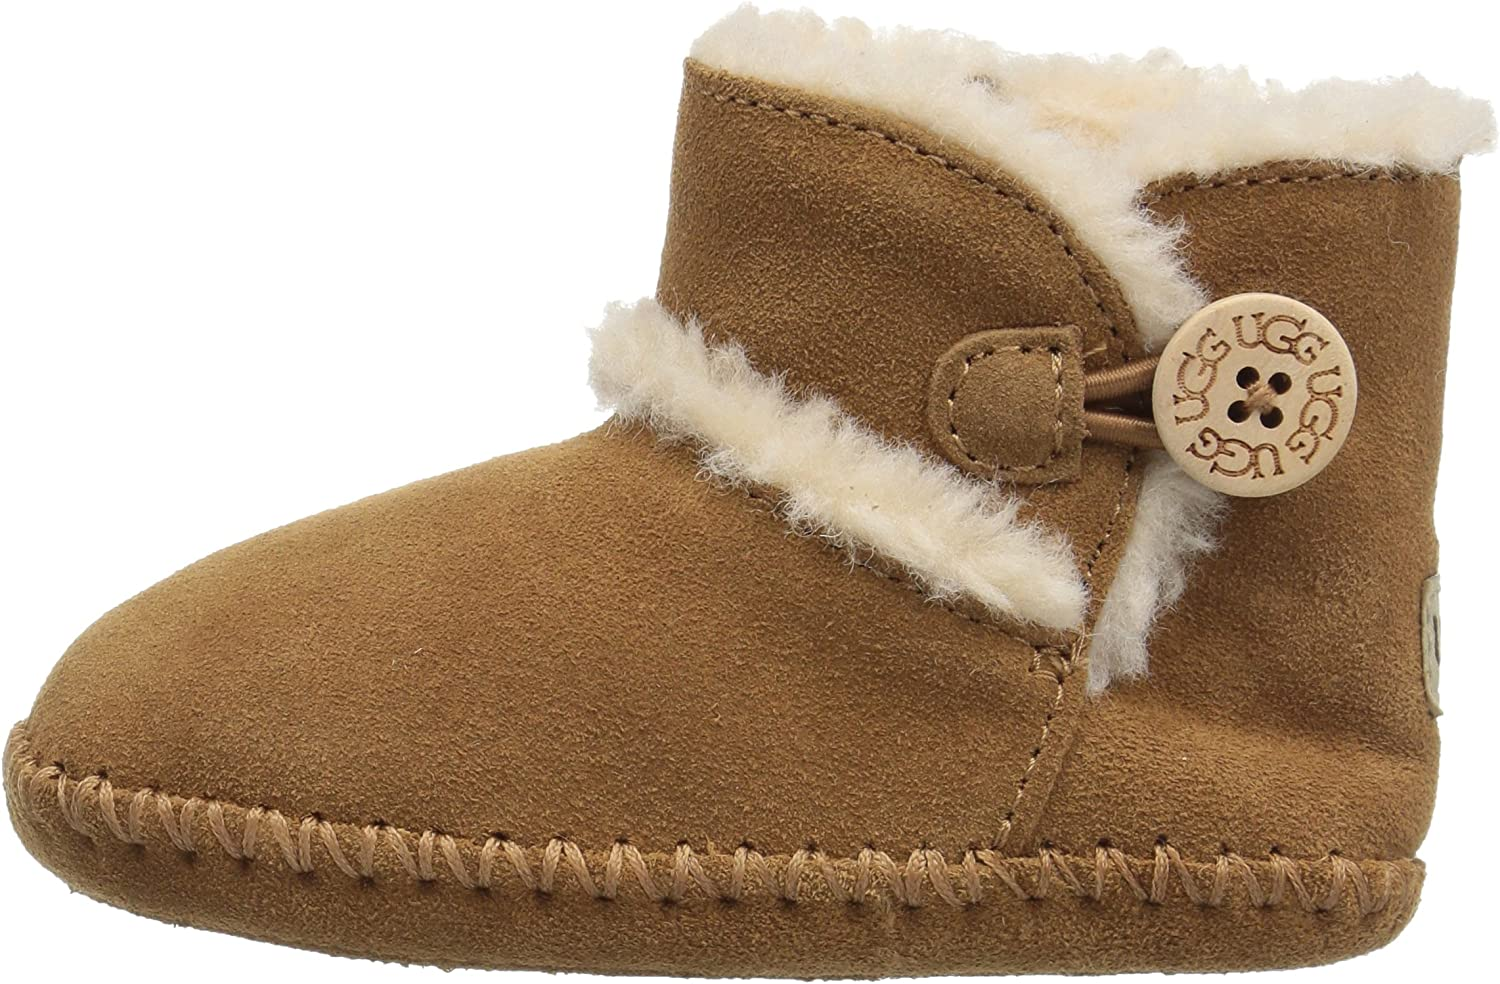   UGG Baby Lemmy II Ankle Boot   Boots